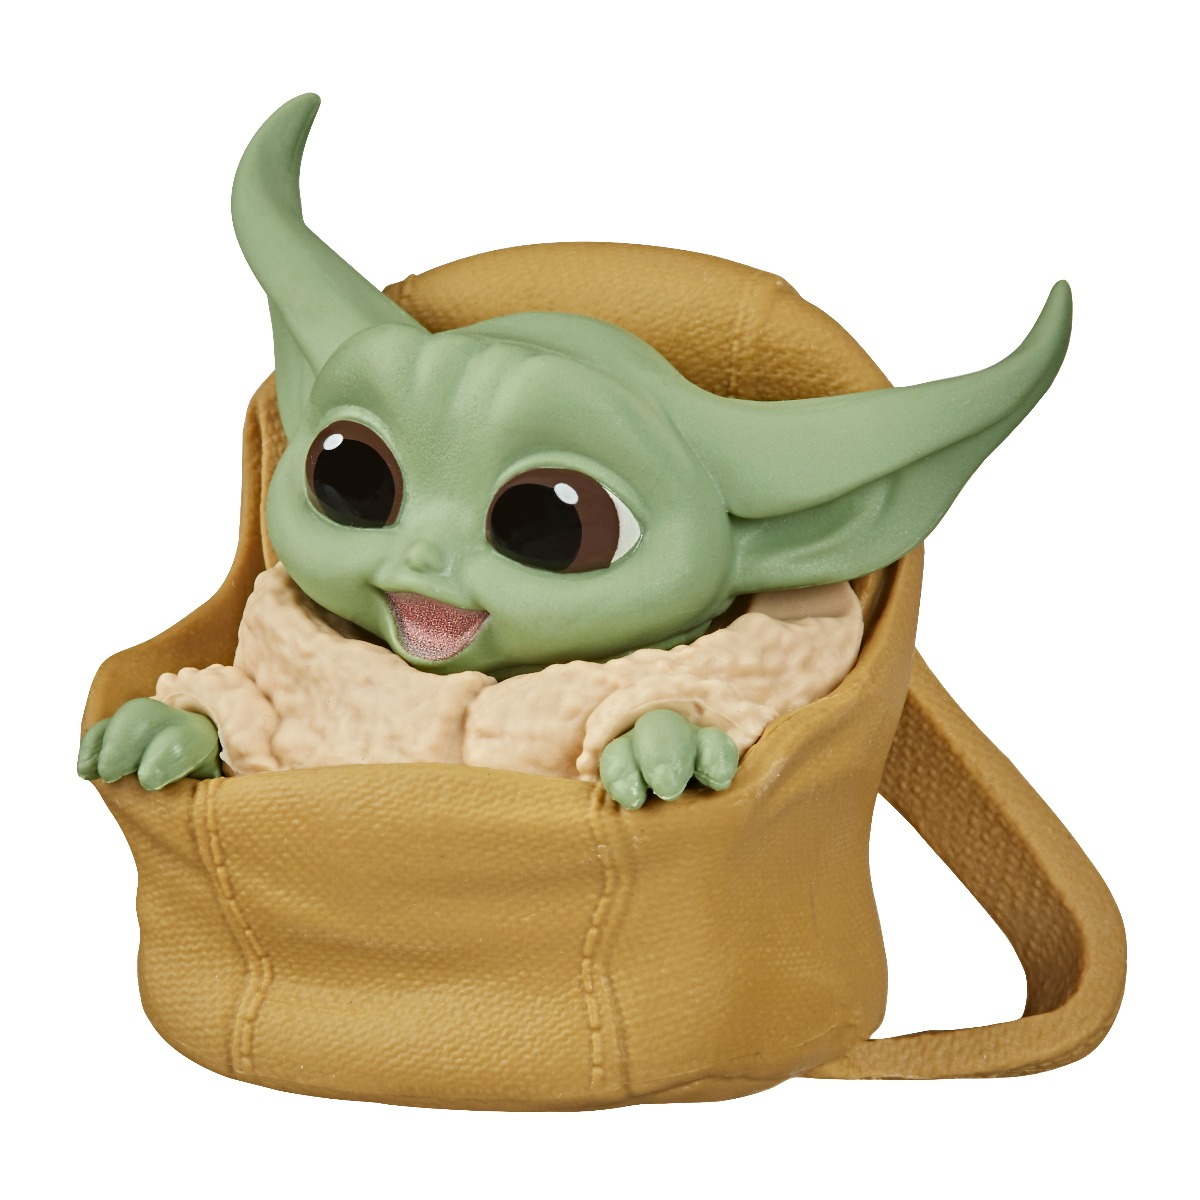 Figurina Star Wars Baby Yoda, Ride, F14775L00, 6 cm